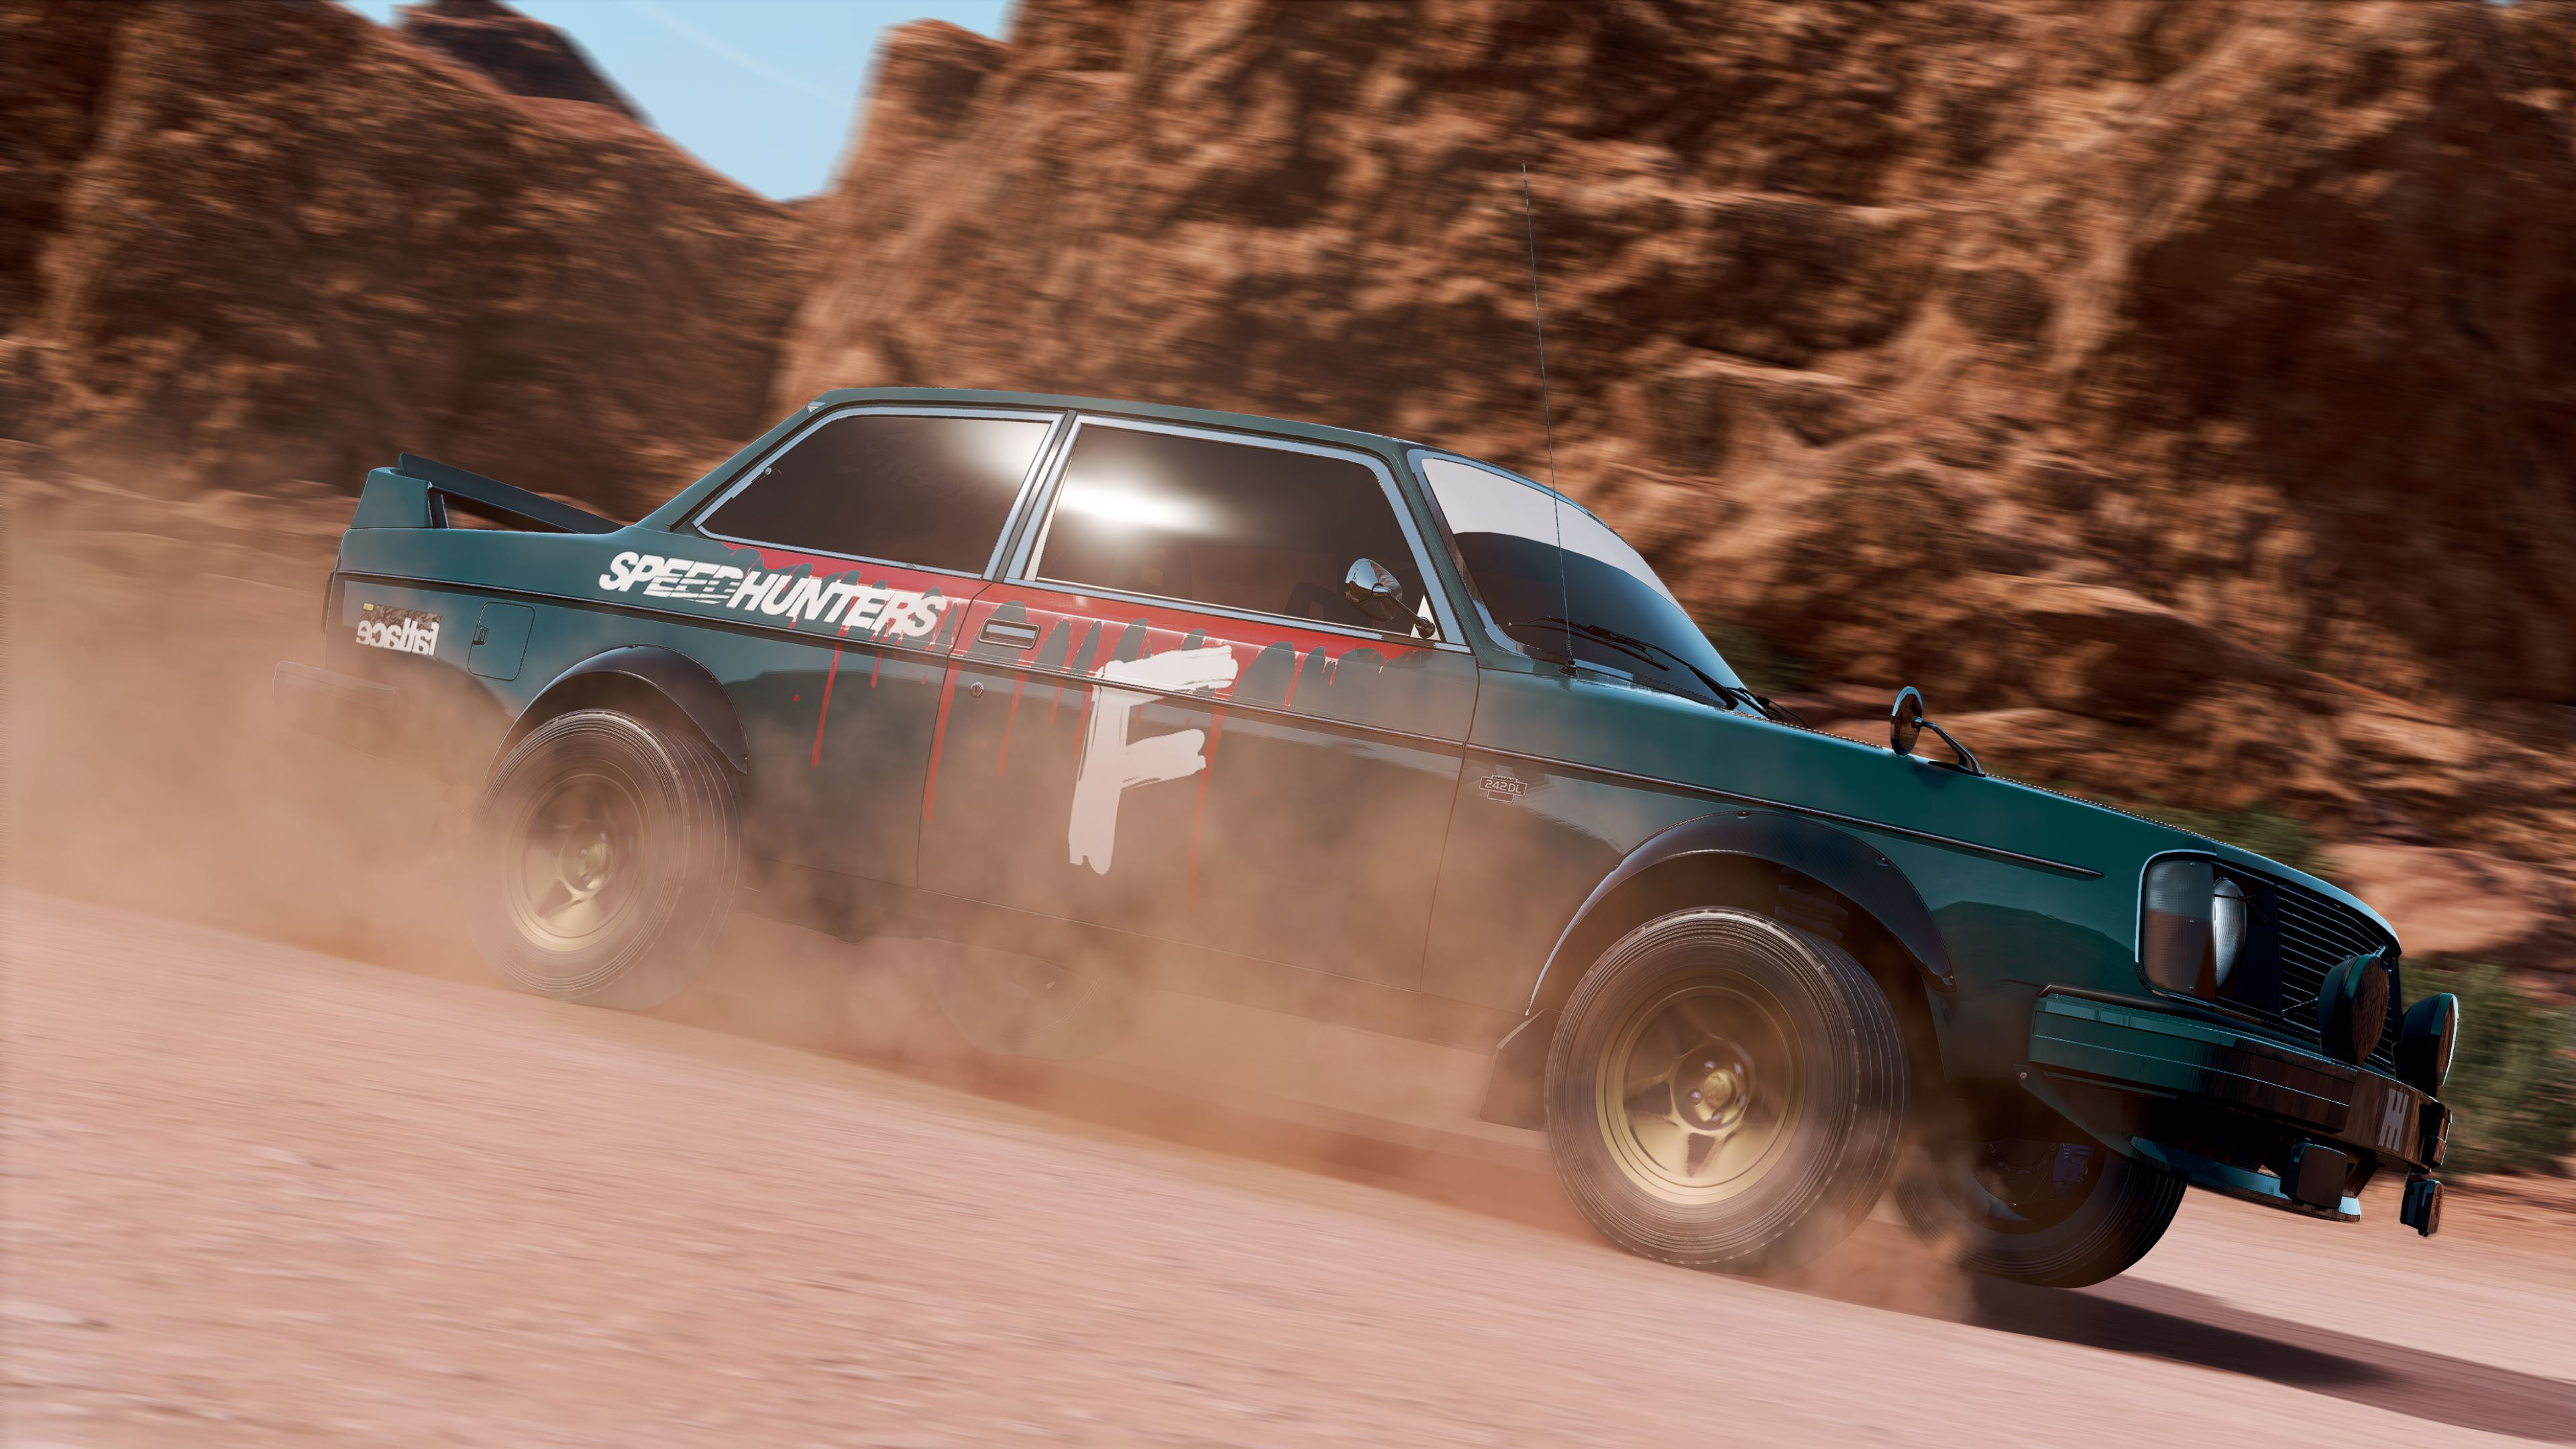 NFS - Need for Speed Payback - Grupa Wolne Ember